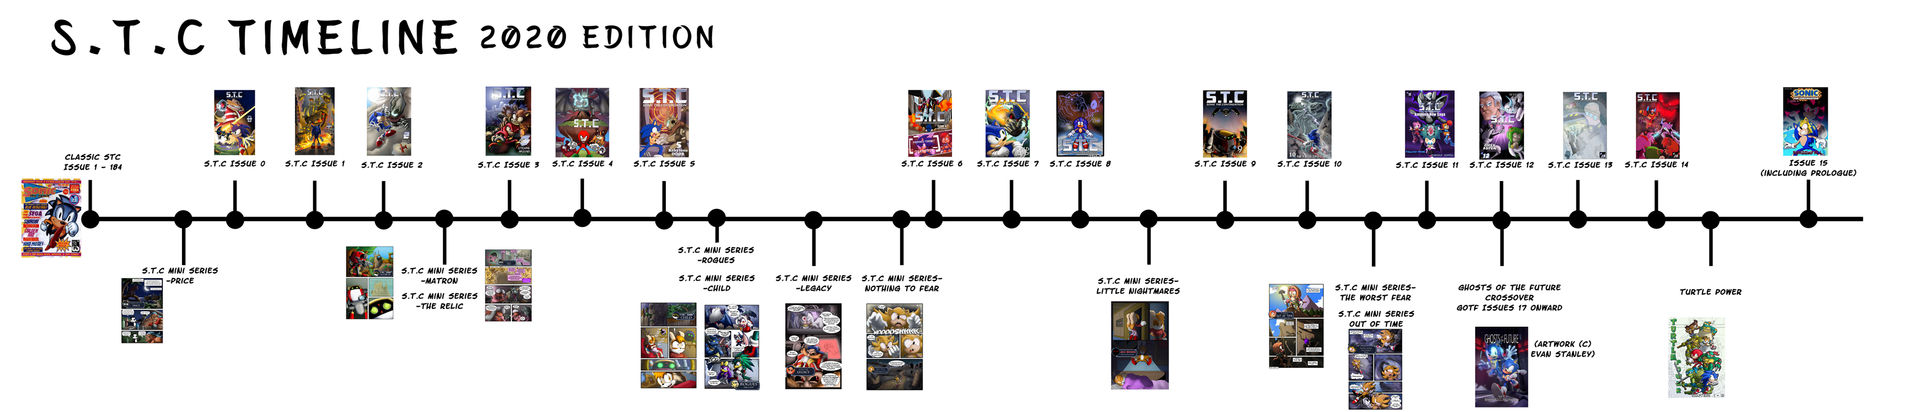 S.T.C Timeline (2020 Edition)